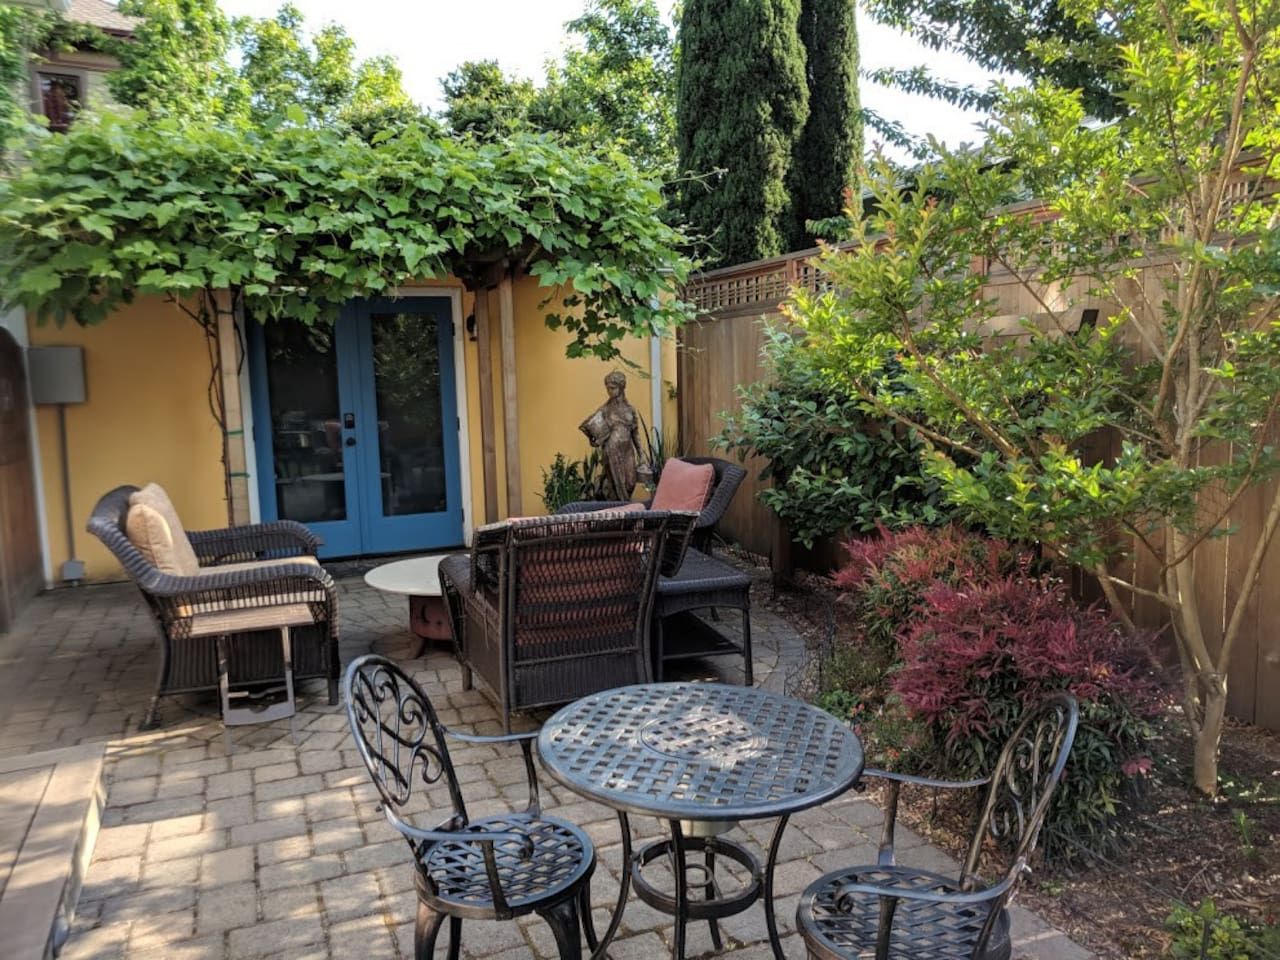 Secluded patio just outside your door, yet only a short stroll to the Hawthorne and Belmont districts.